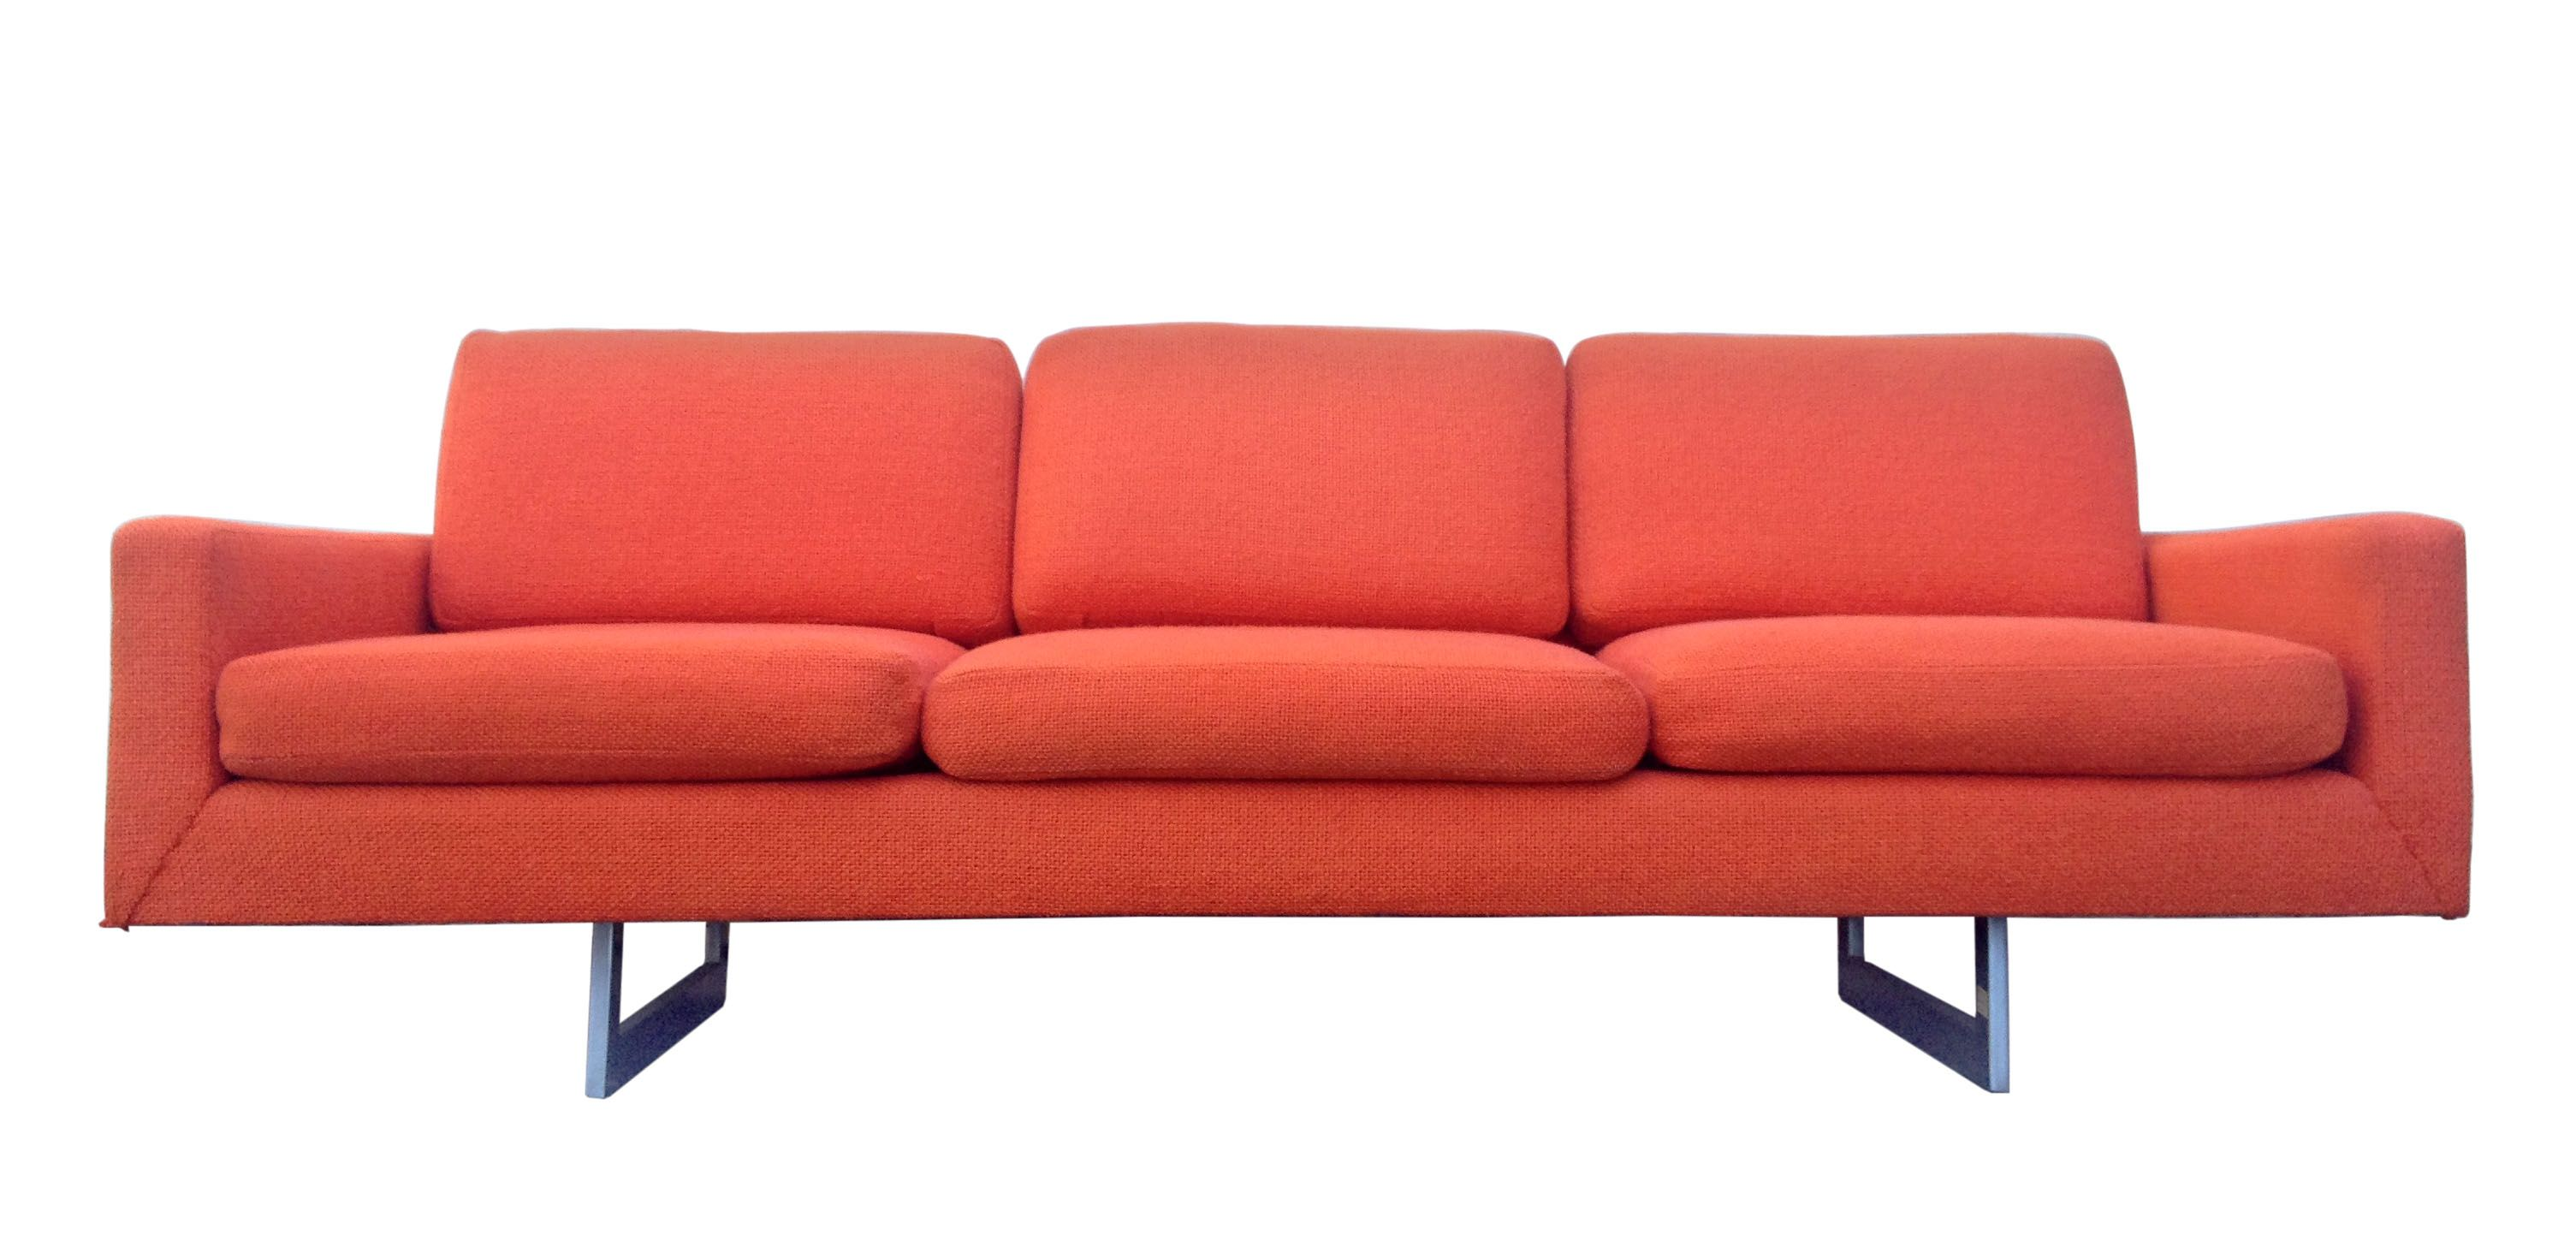 Mid Century Modern Bright Orange Sofa